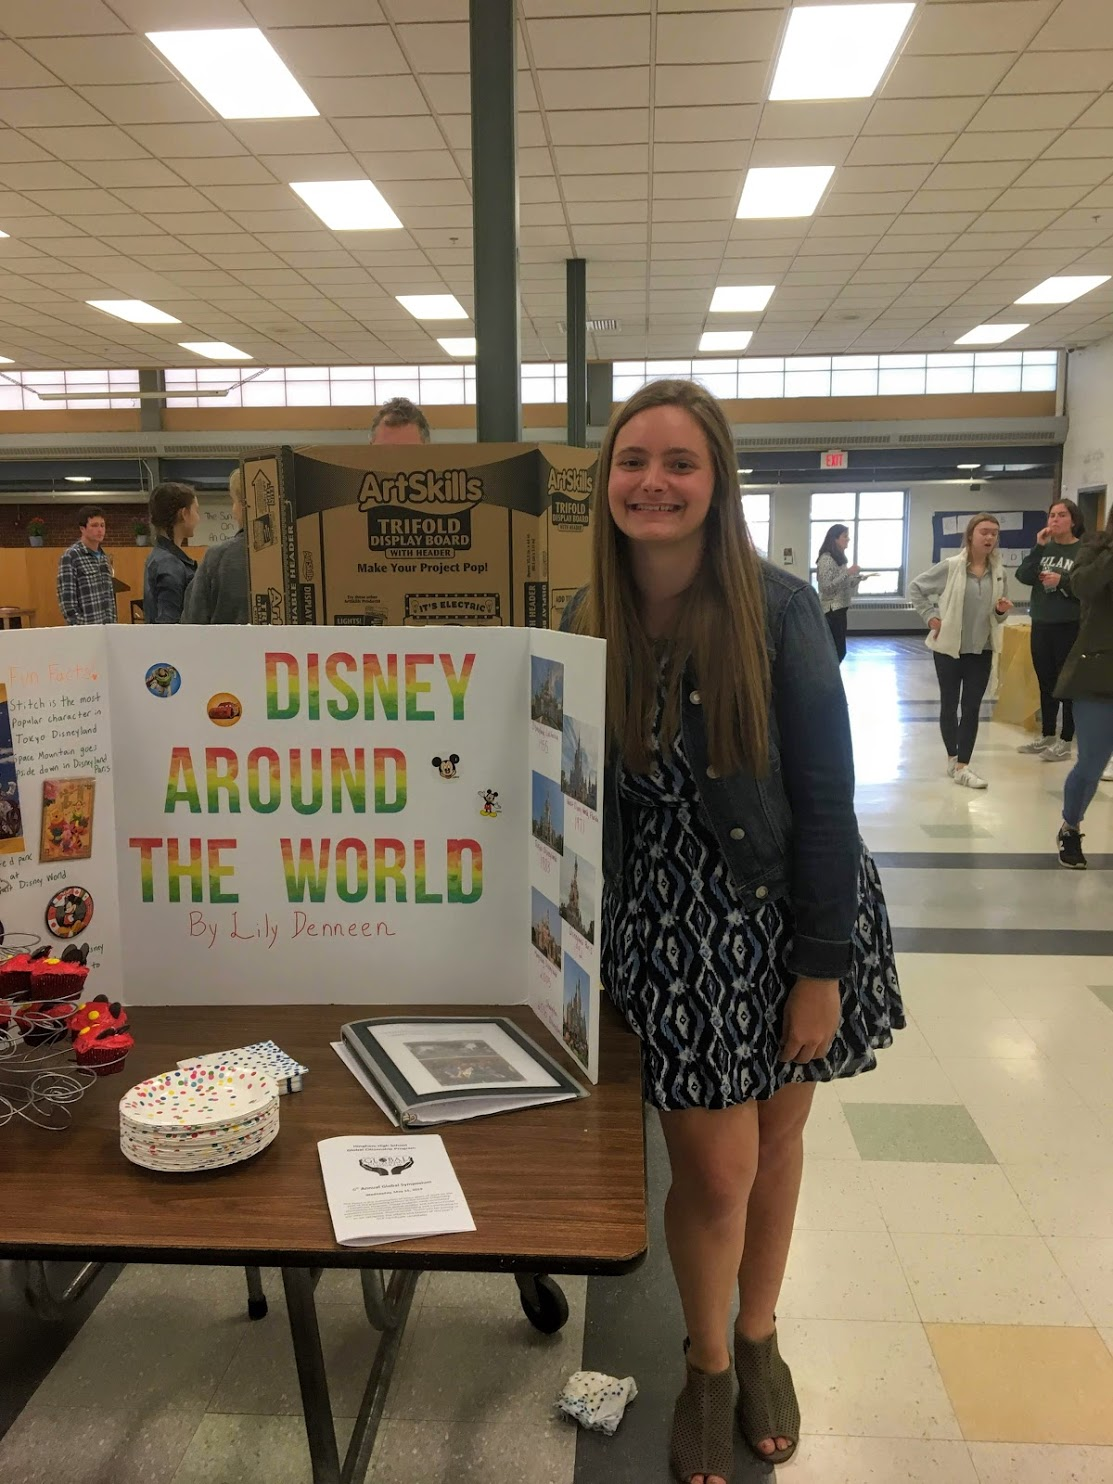 Hingham High School Alumna and former Global Citizenship Program member Lily Deneen stands next to her